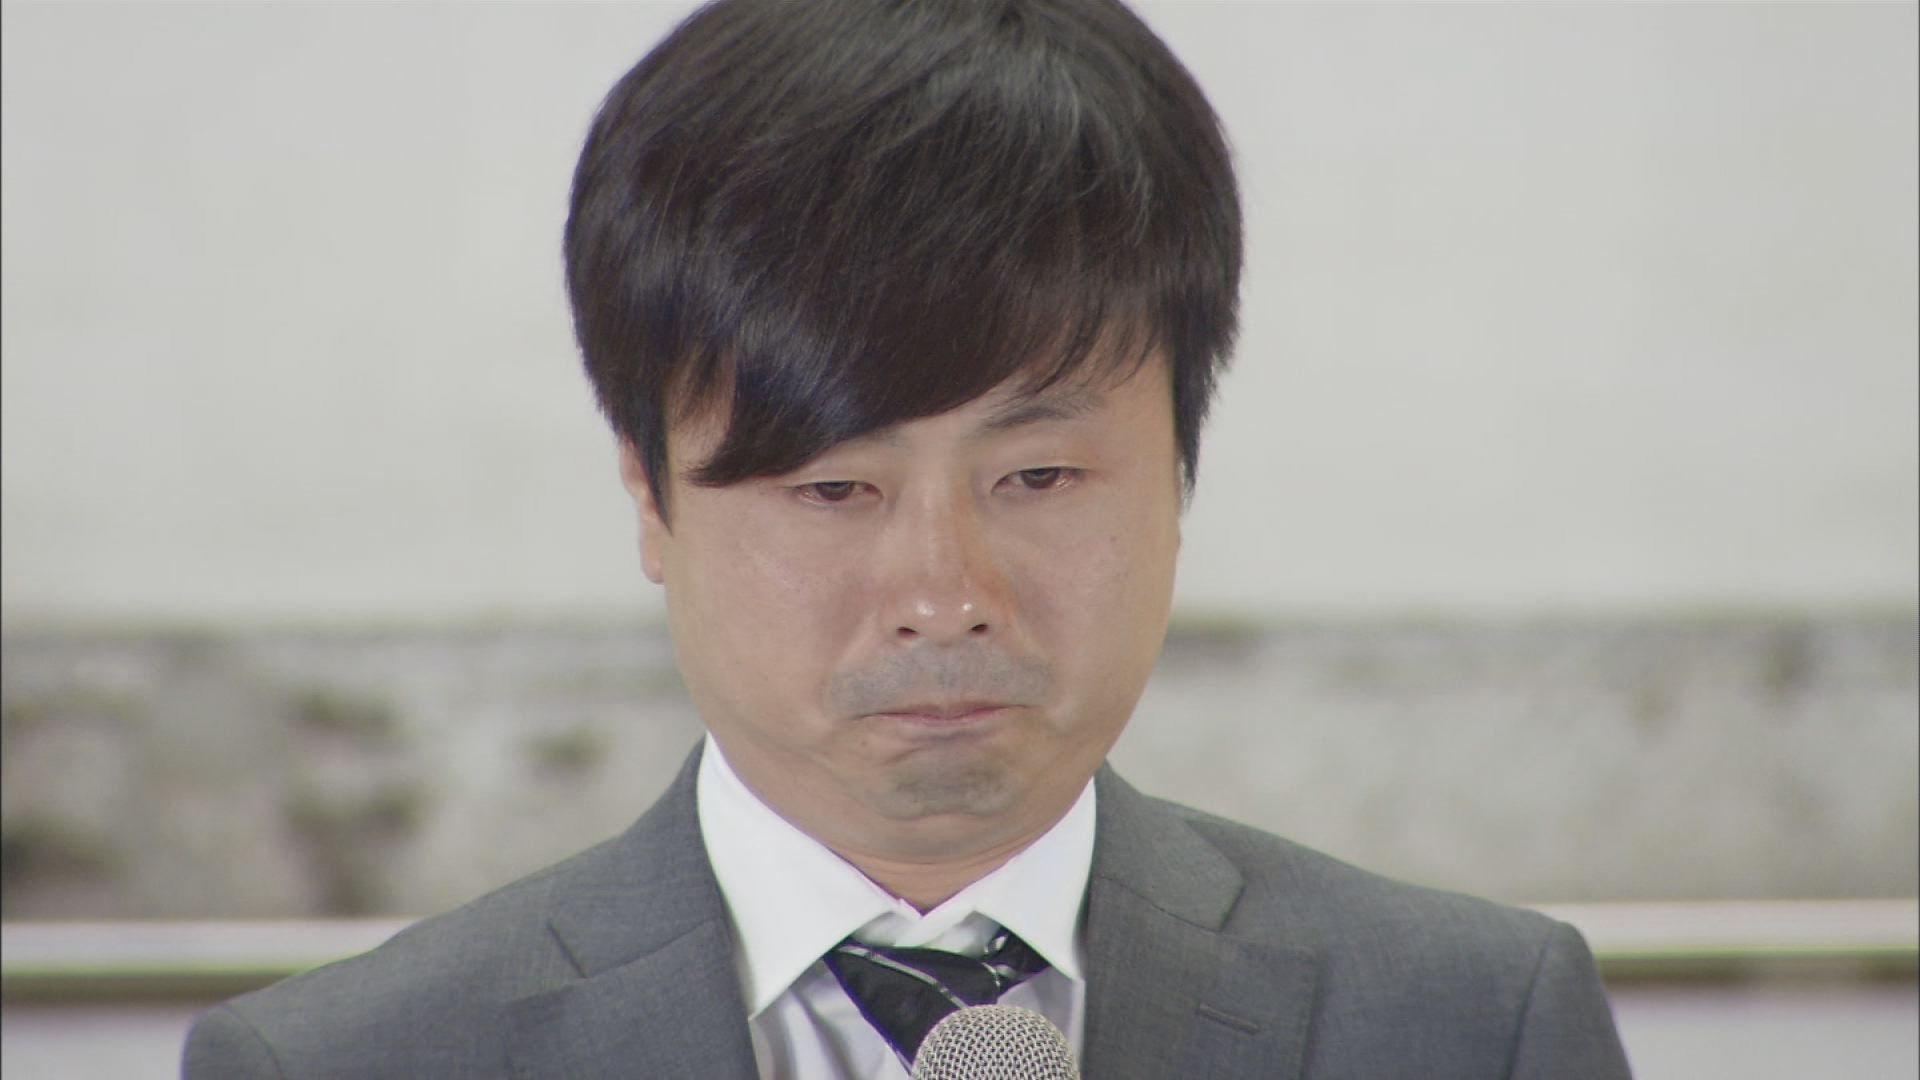 img 5a43a1c0bdd86.png?resize=300,169 - 【北朝鮮】河本準一が芸能界から干された理由がヤバすぎた!【密入国】